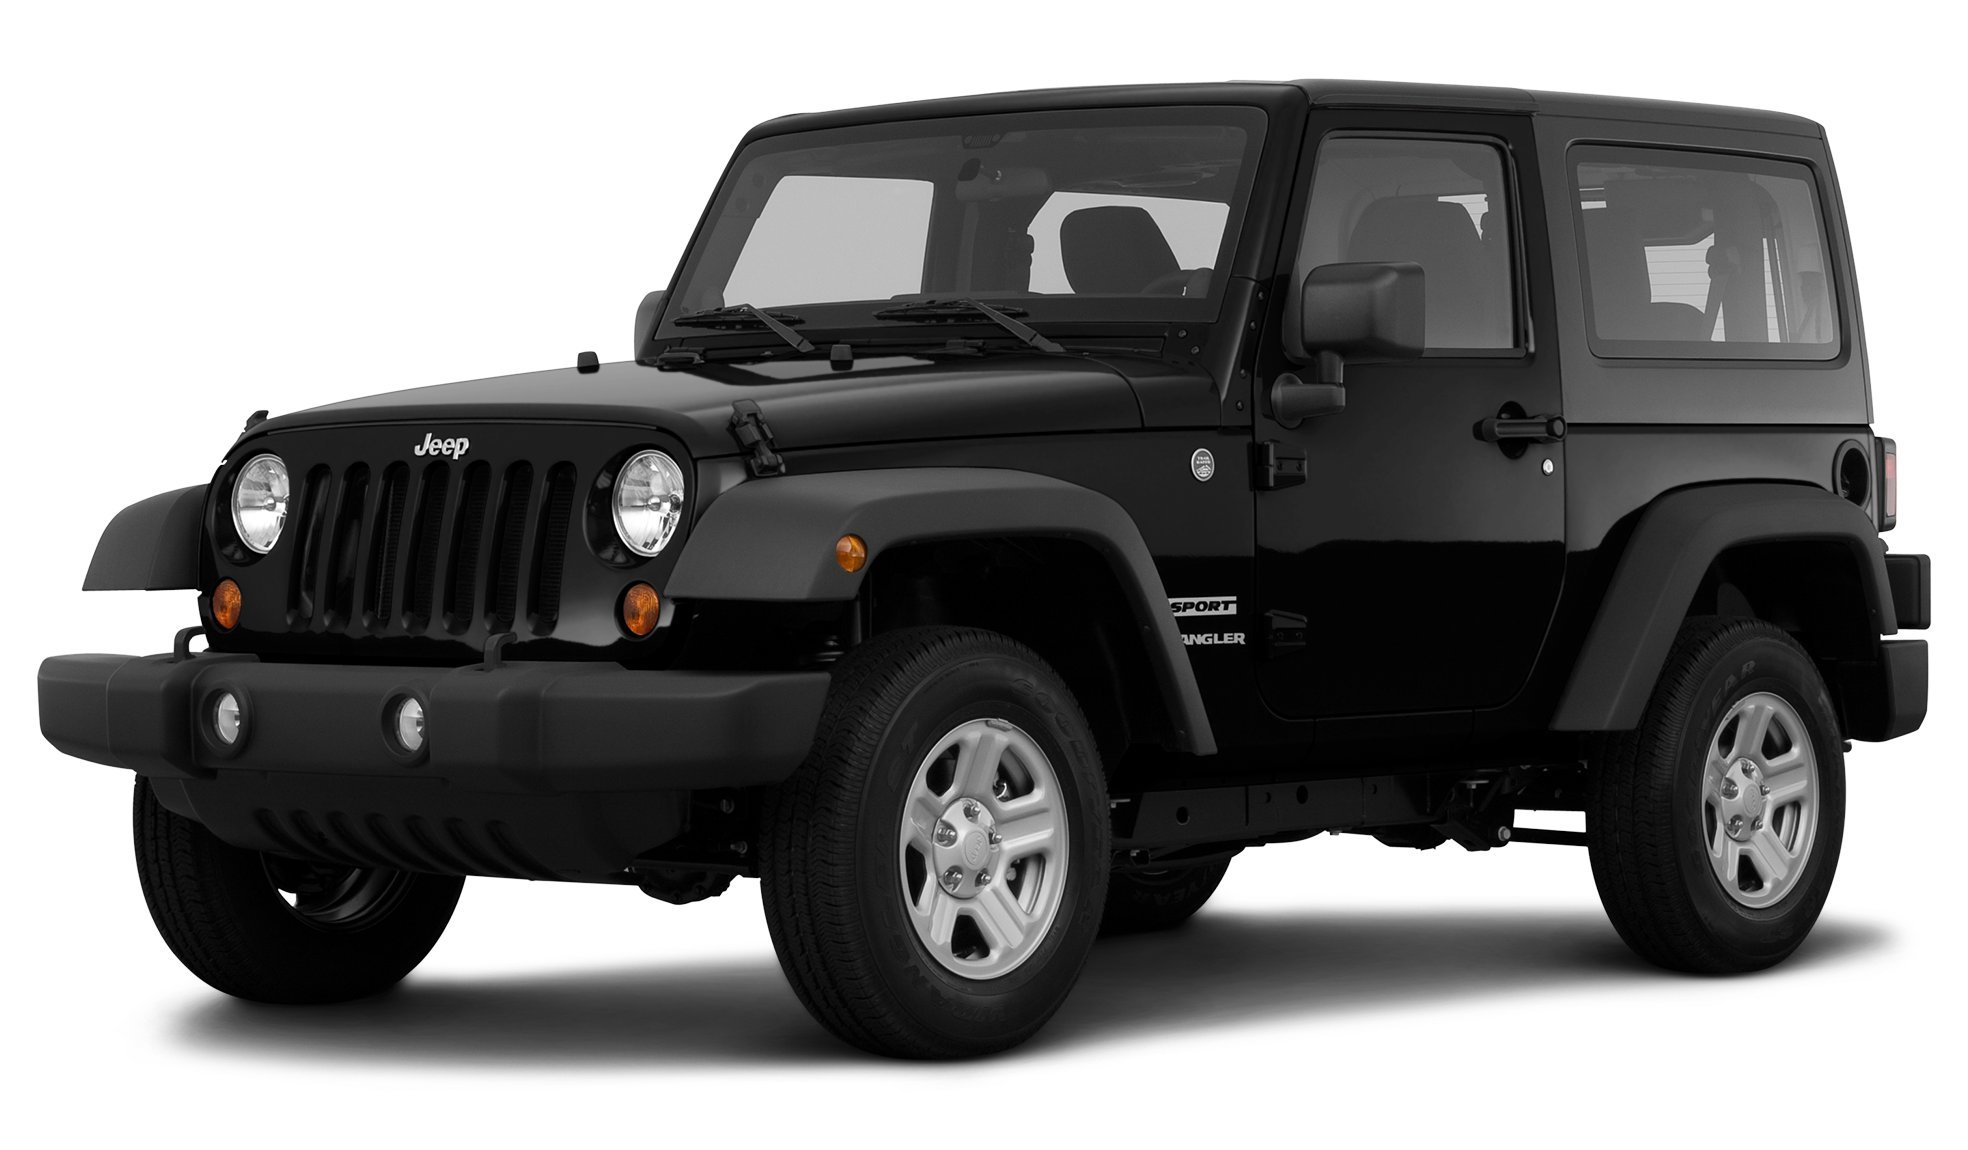 2011 jeep wrangler reviews images and specs vehicles. Black Bedroom Furniture Sets. Home Design Ideas